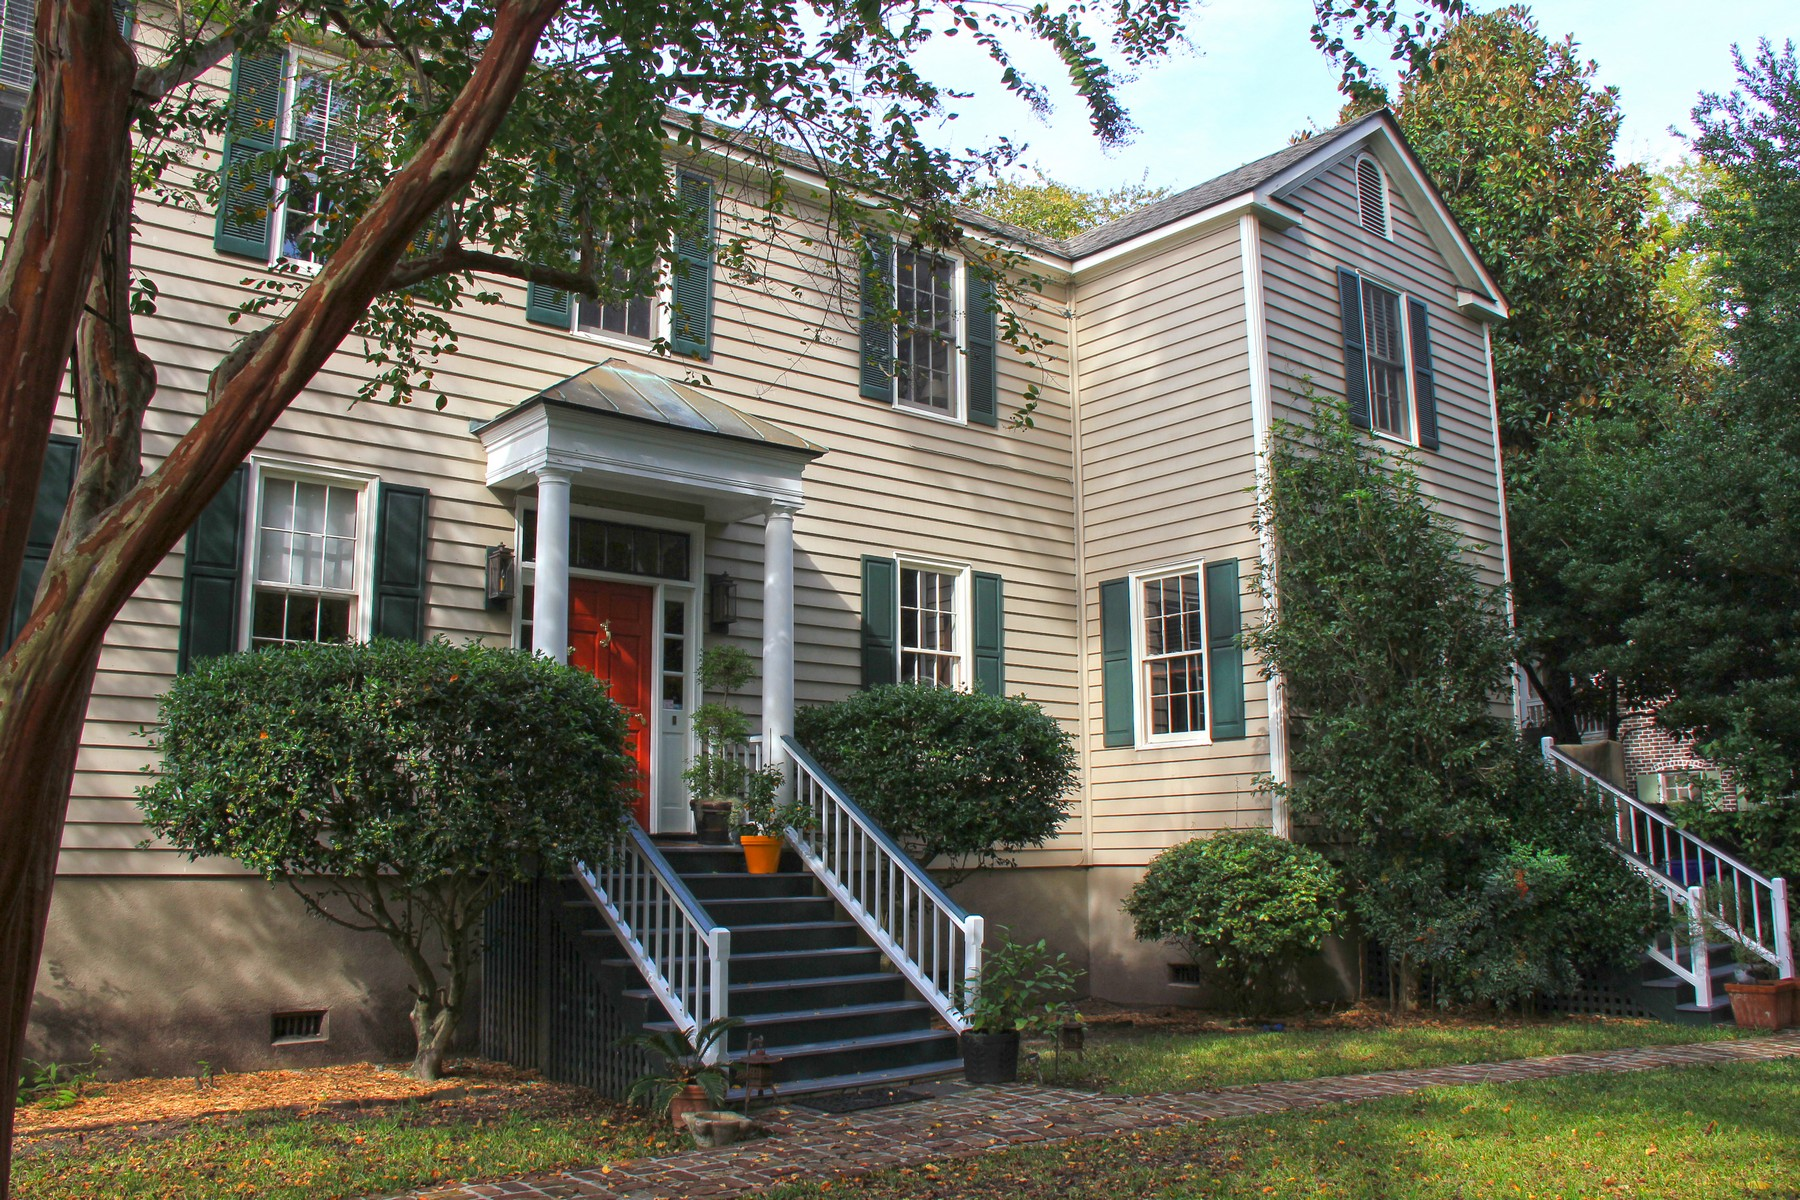 Maison unifamiliale pour l Vente à Beautiful Charleston Single Home in Harleston Village 42 1/2 Barre Street Charleston, Caroline Du Sud 29401 États-Unis